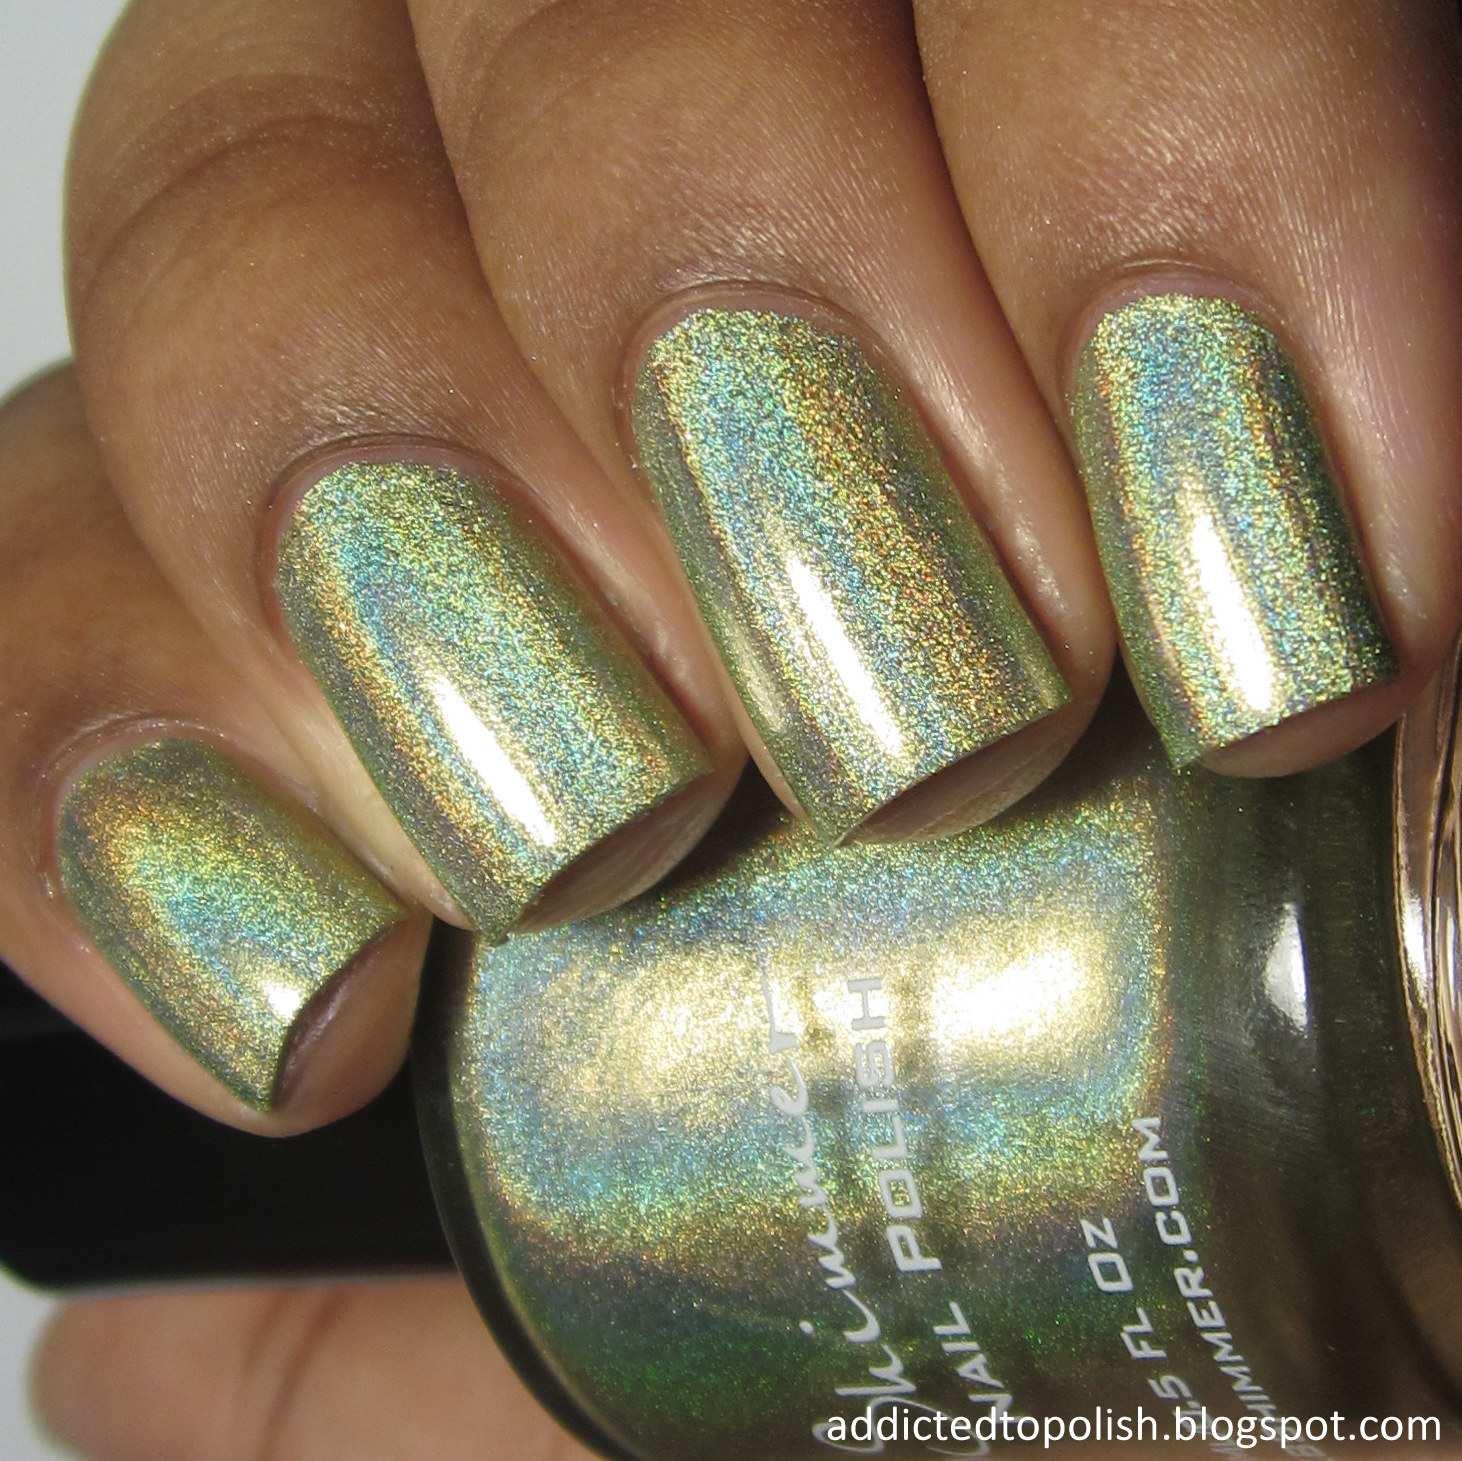 KBShimmer Ins and Sprouts Spring 2015 green holo